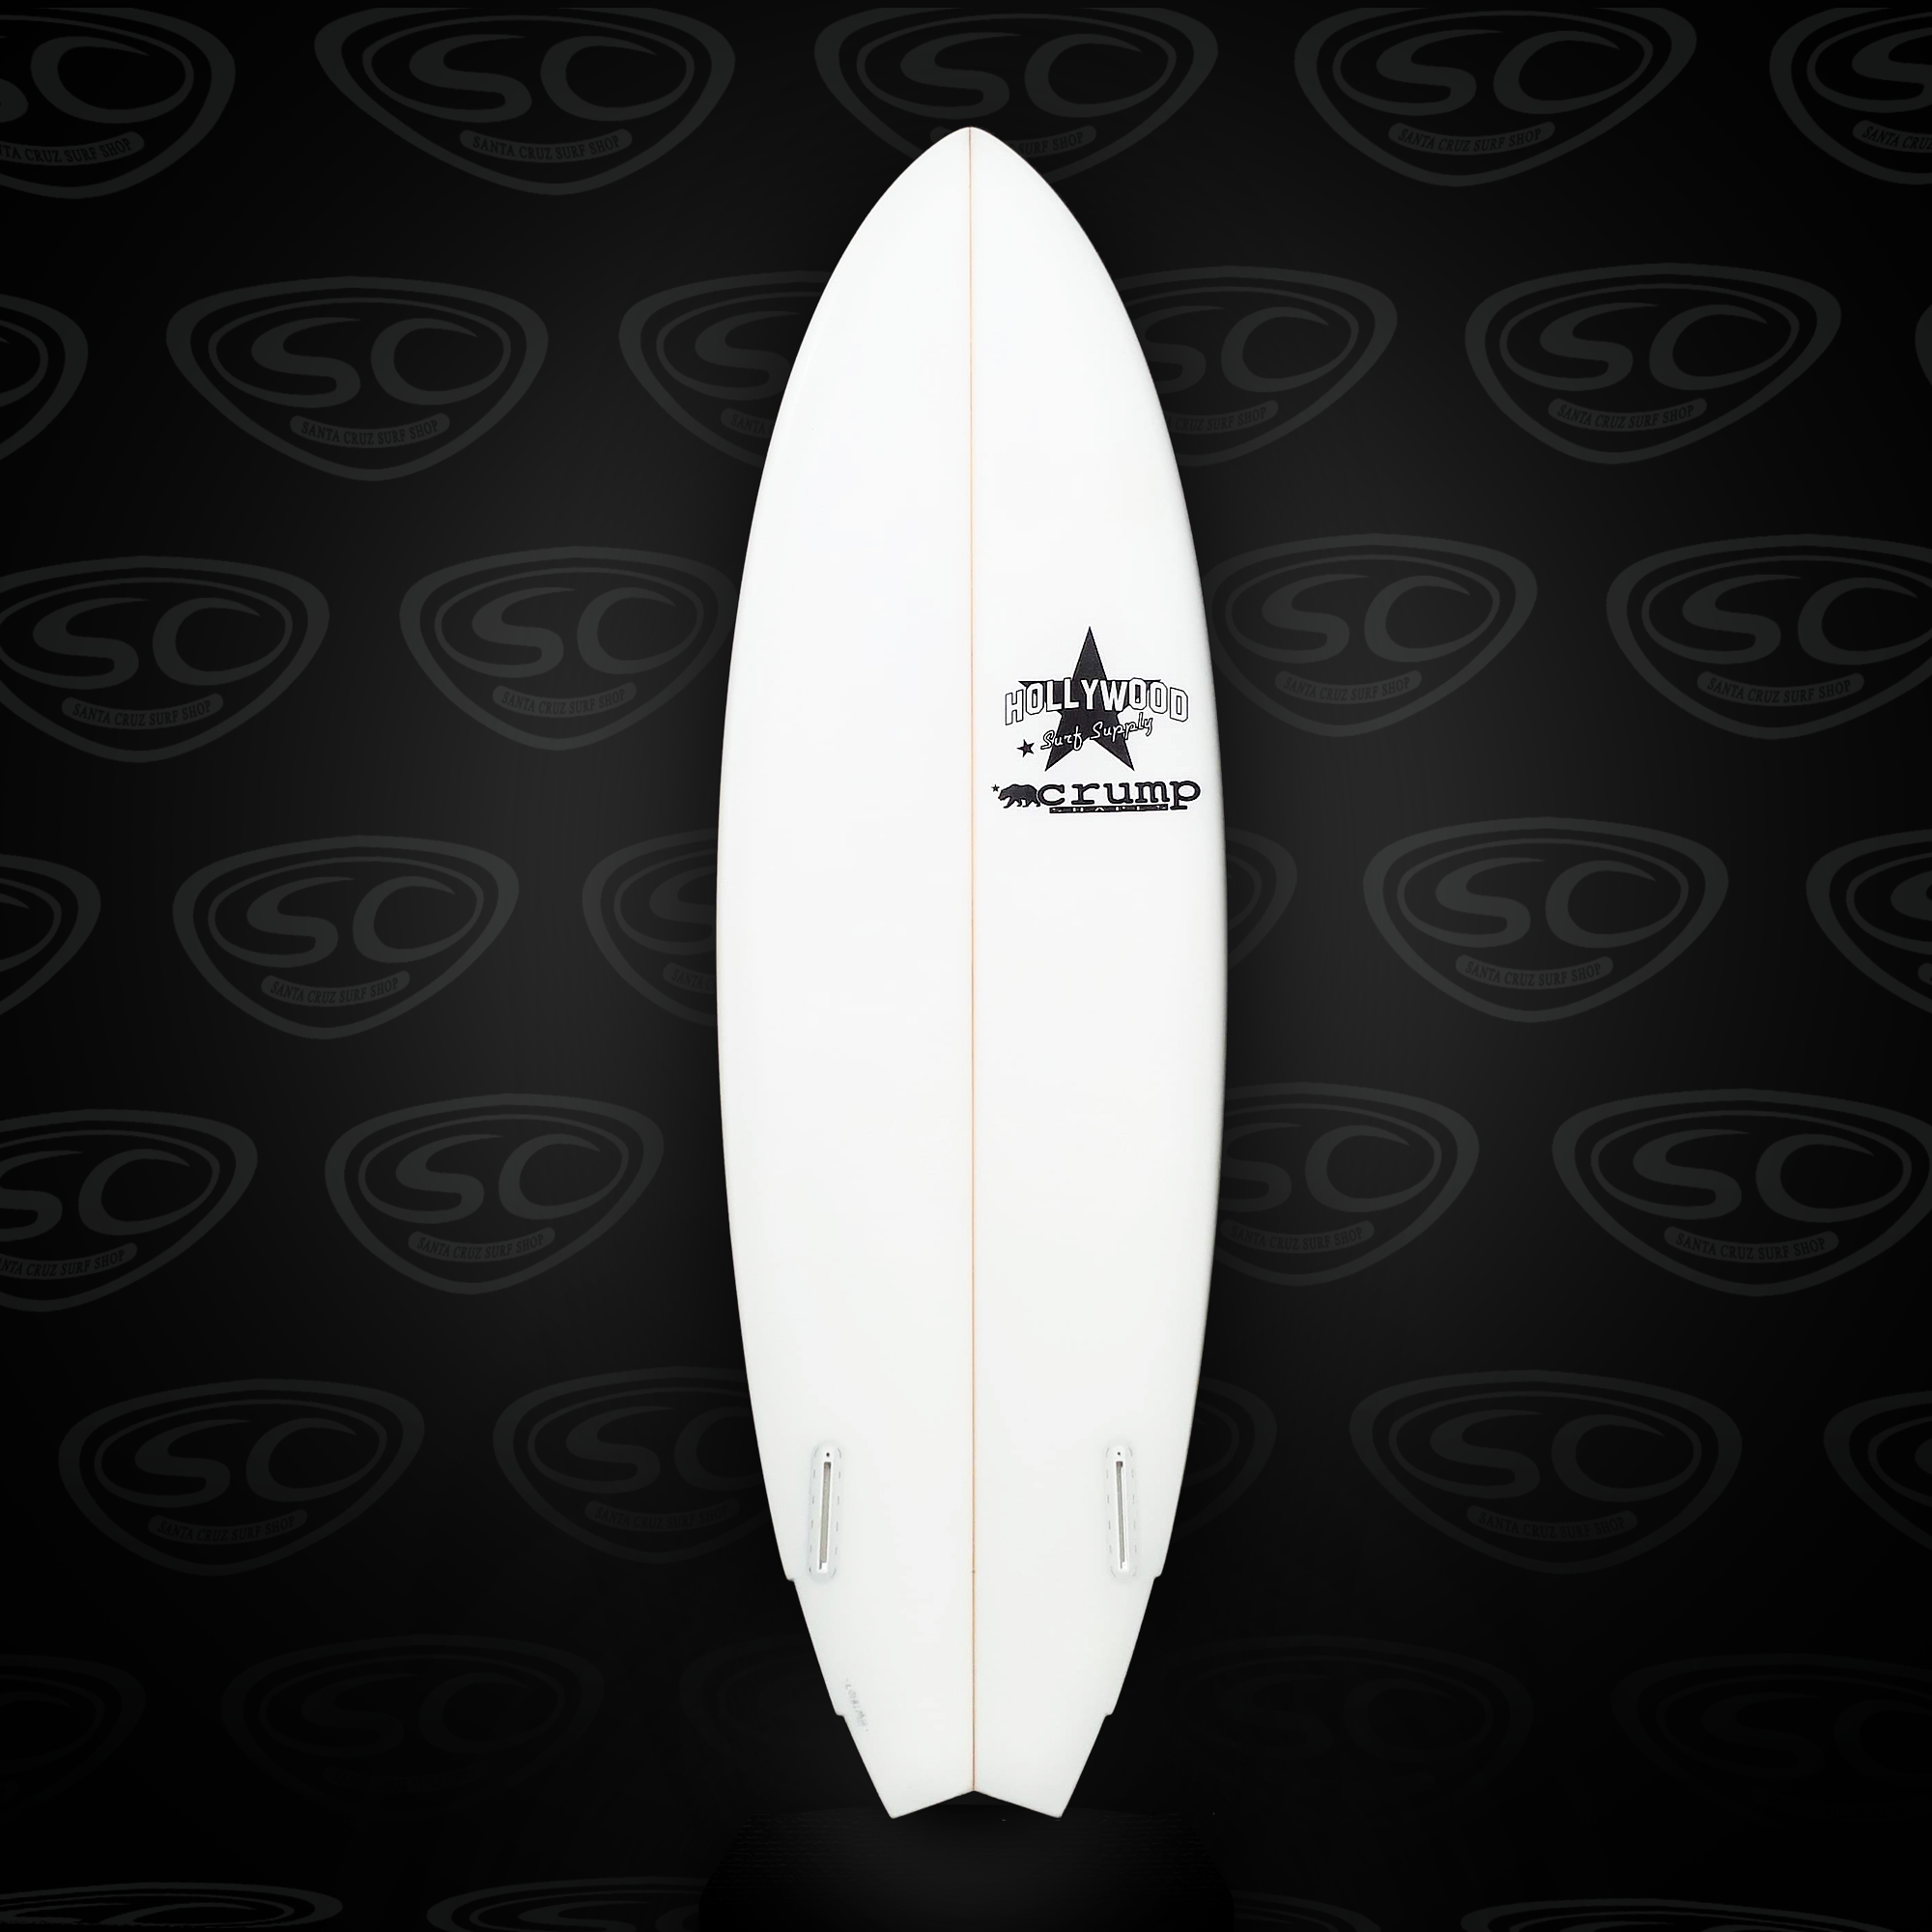 Hollywood Evil Twin Surfboard - Santa Cruz Surf Shop™